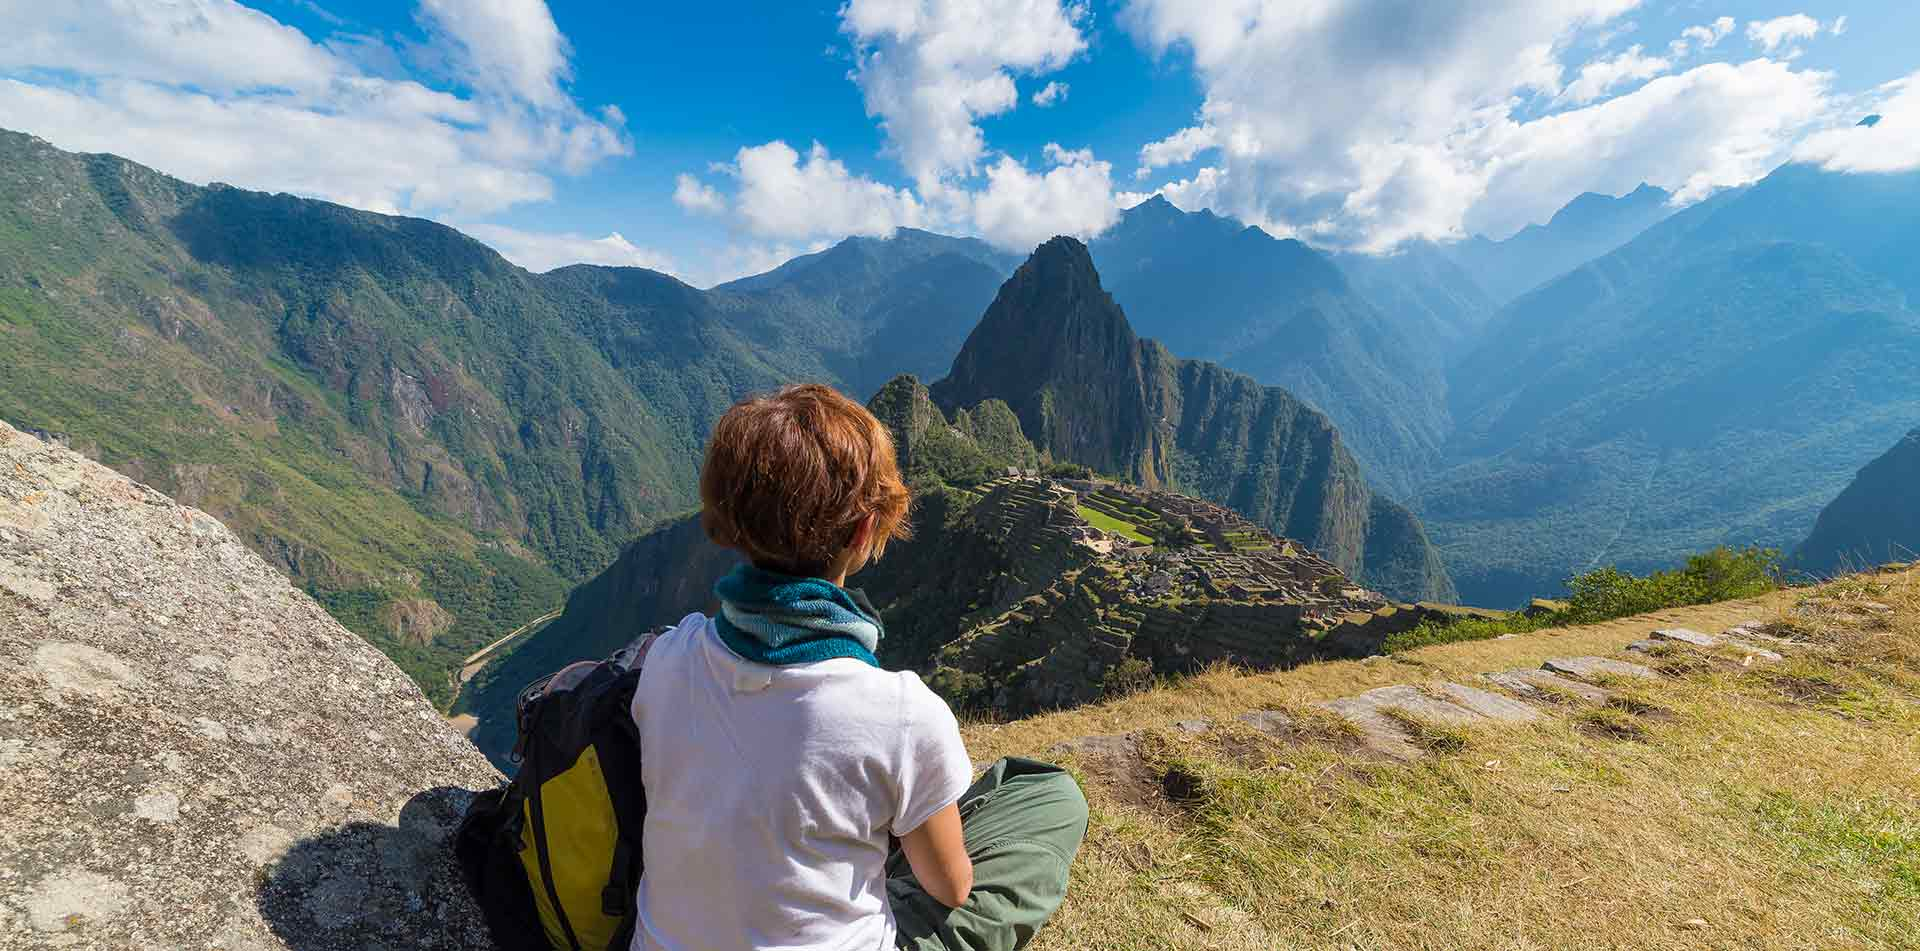 South America Peru Andes woman sitting looking at scenic Machu Picchu and ancient Inca ruins - luxury vacation destinations